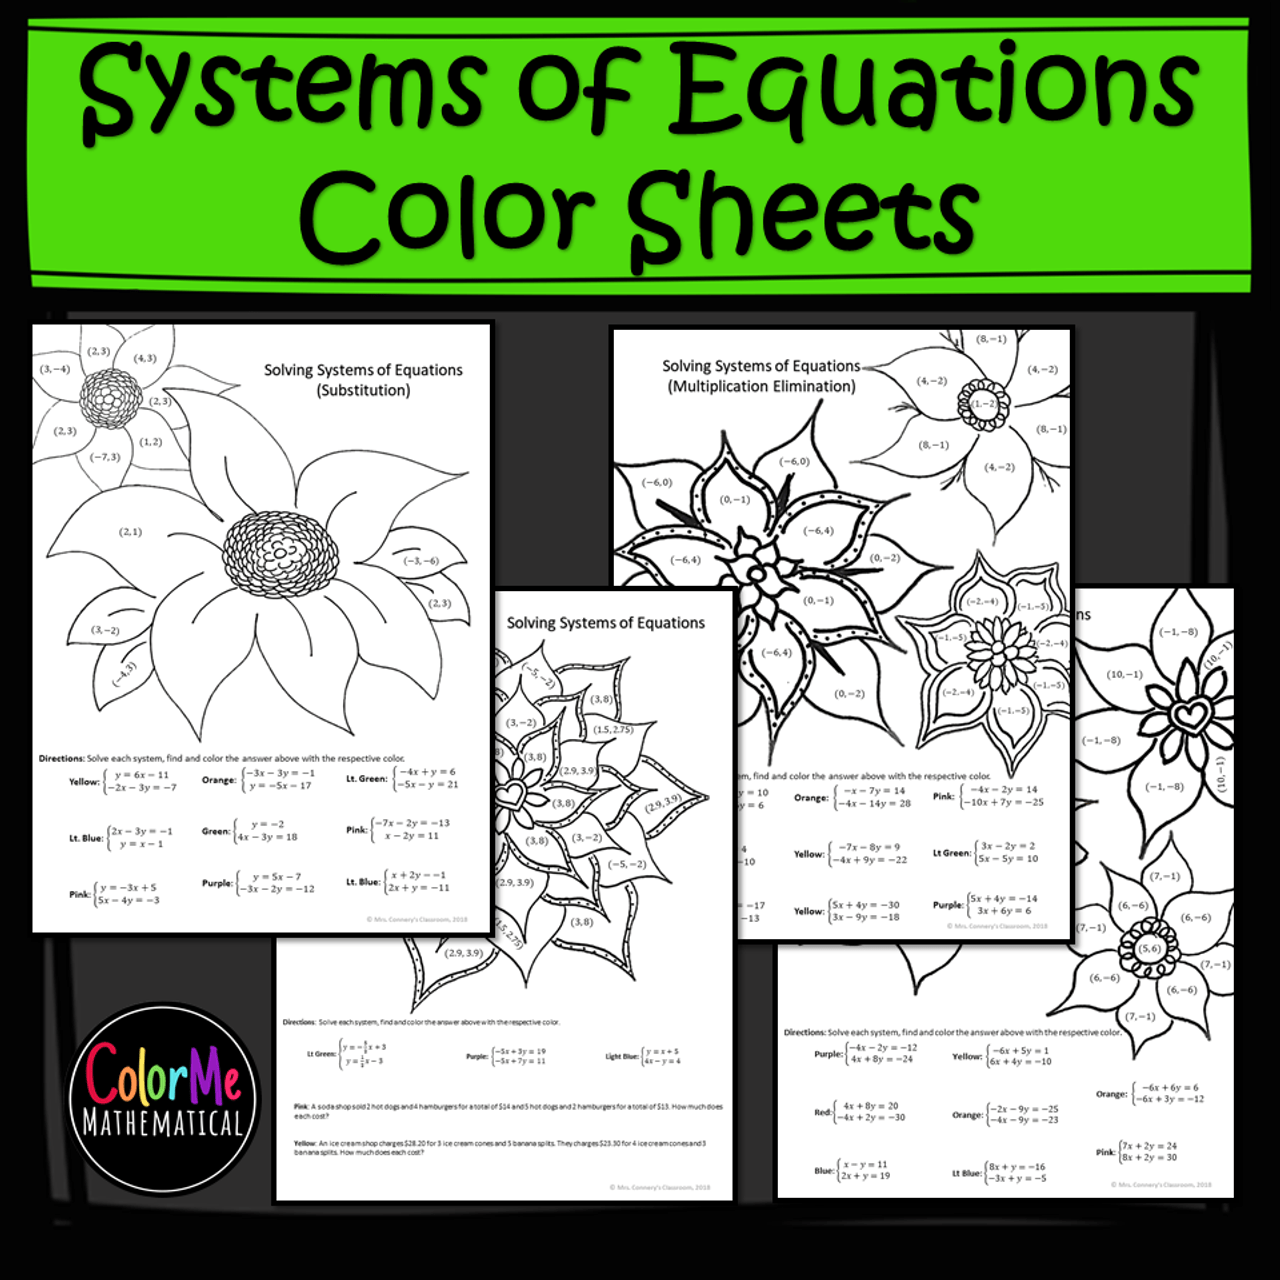 Solving Systems of Equations Color by Number Worksheets - Amped Up Learning [ 1280 x 1280 Pixel ]